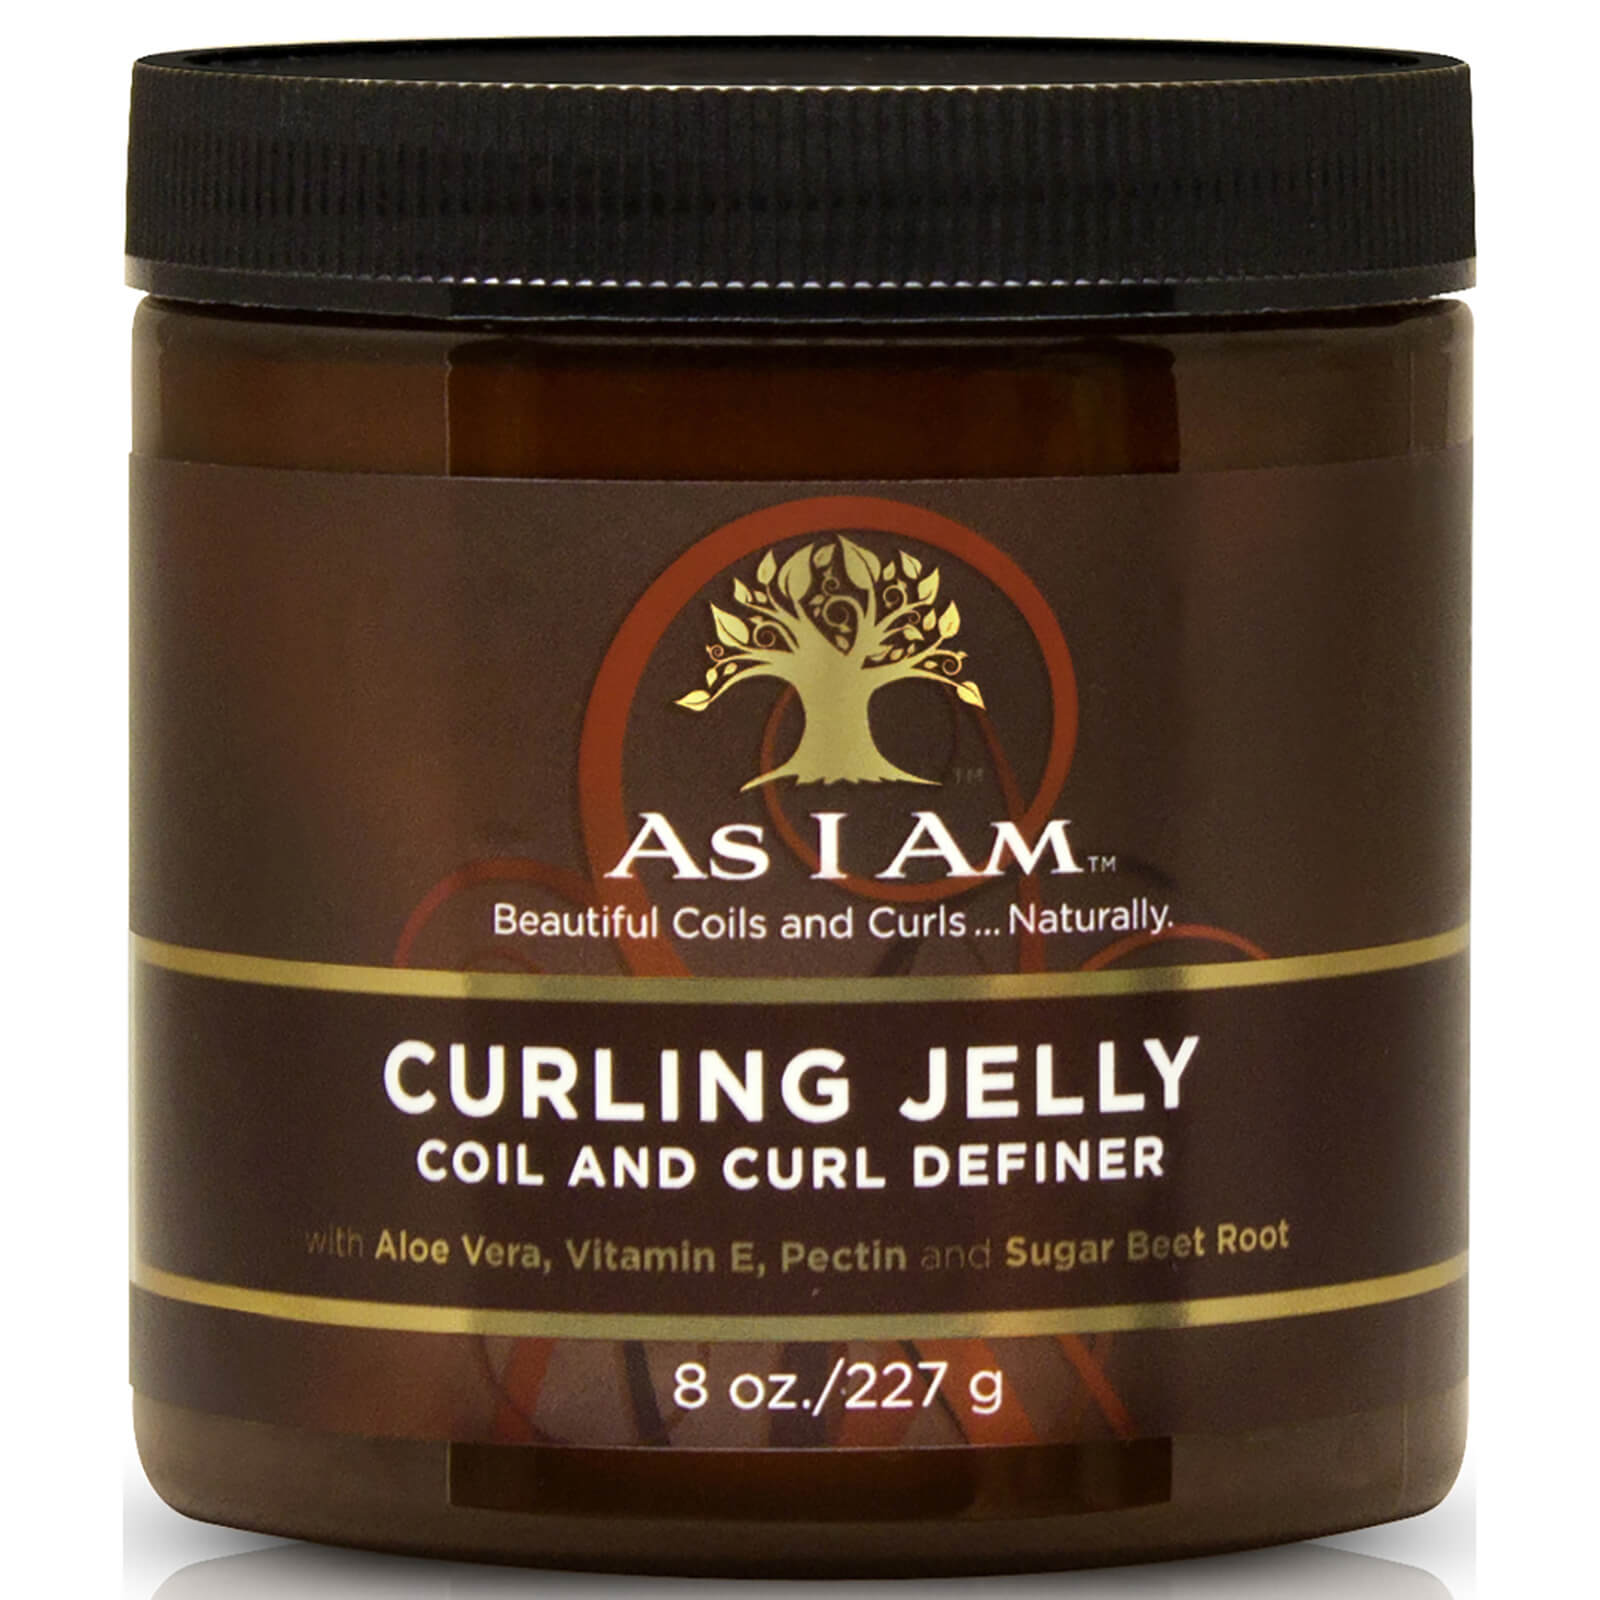 As I Am Curling Jelly Coil and Curl Definer 227g  50c0152086509